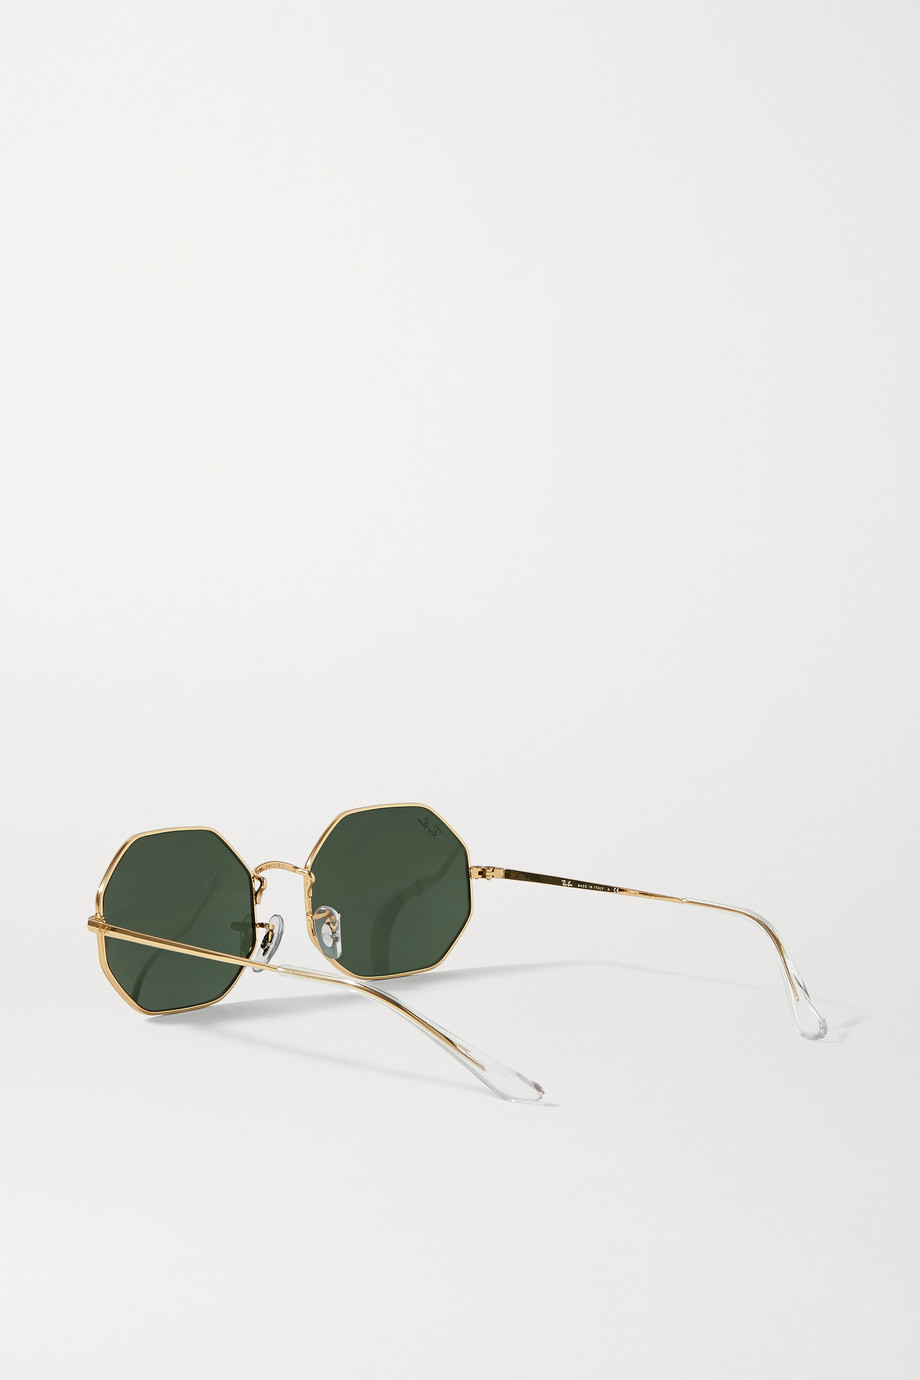 Ray-Ban 1972 octagon-frame gold-tone sunglasses